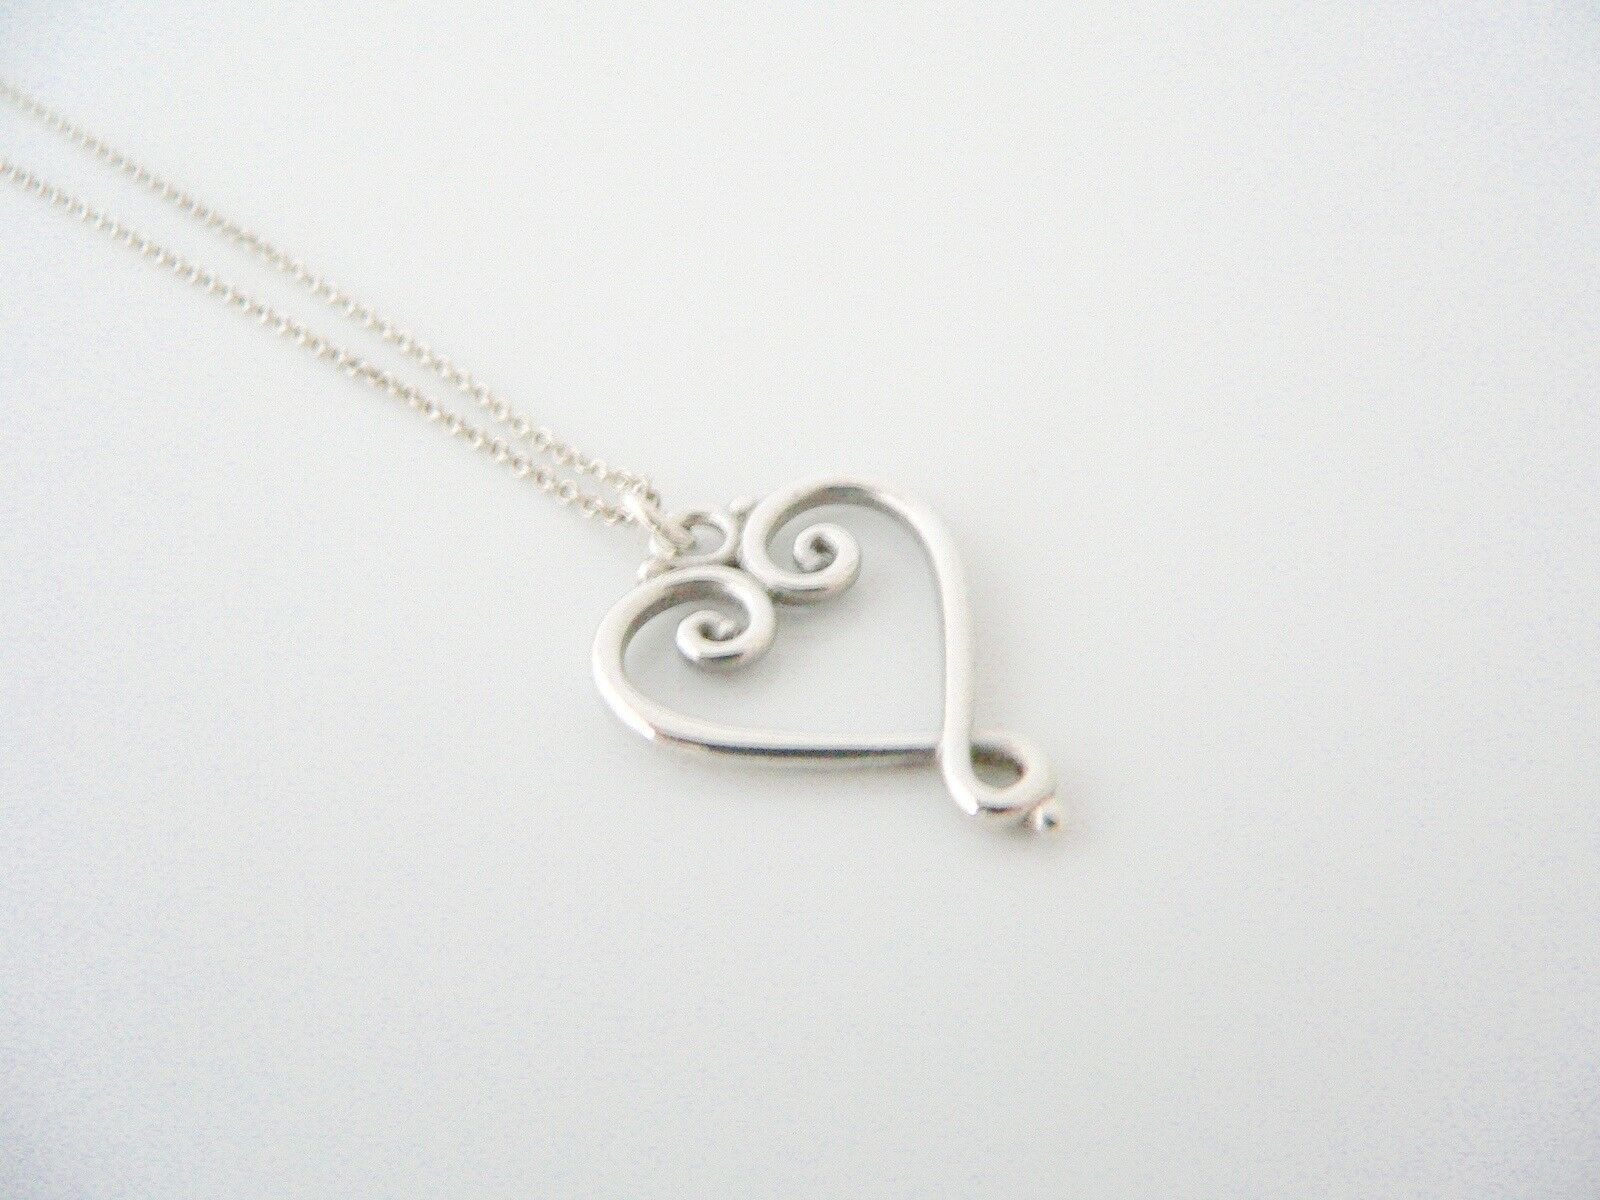 Tiffany & Co Silver Picasso Venezia Goldoni Heart Necklace Pendant 19 In Longer